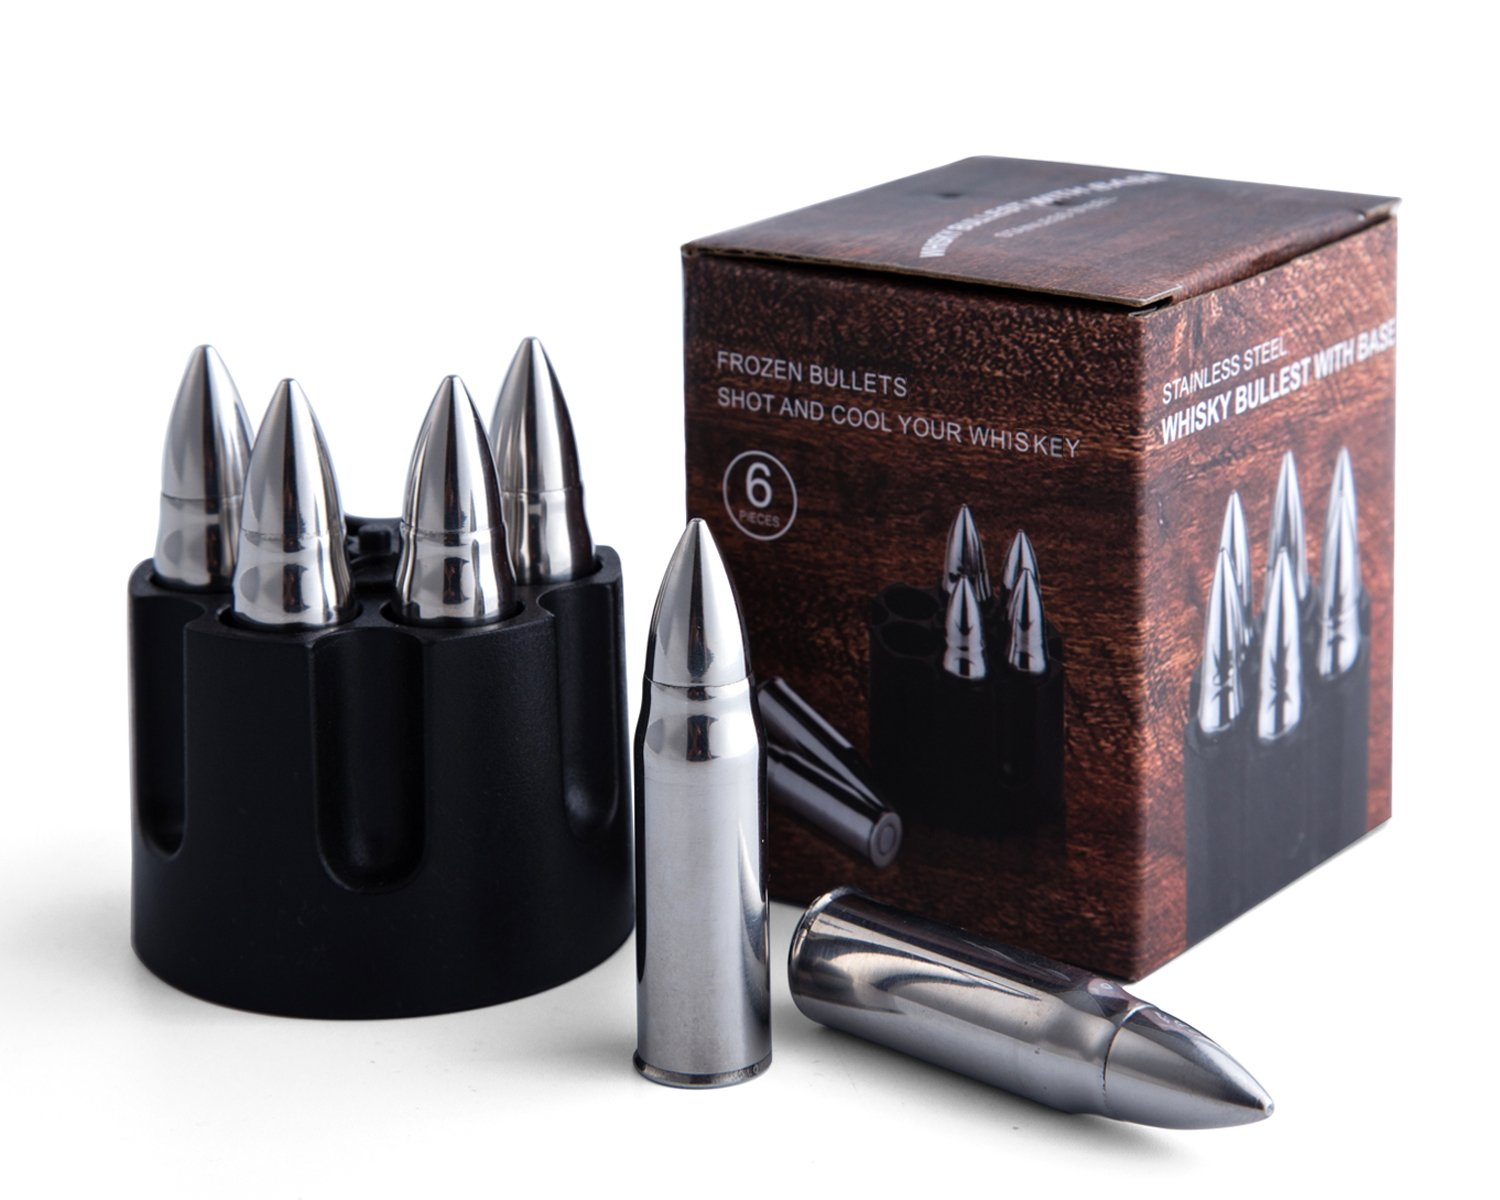 JILLMO Whiskey Bullet Stone with Base 304 Stainless Steel Reusable Chilling Ice Rocks/Set of 6/2.25'' Large Bullet-Shaped Chillers for Whiskey Lover …